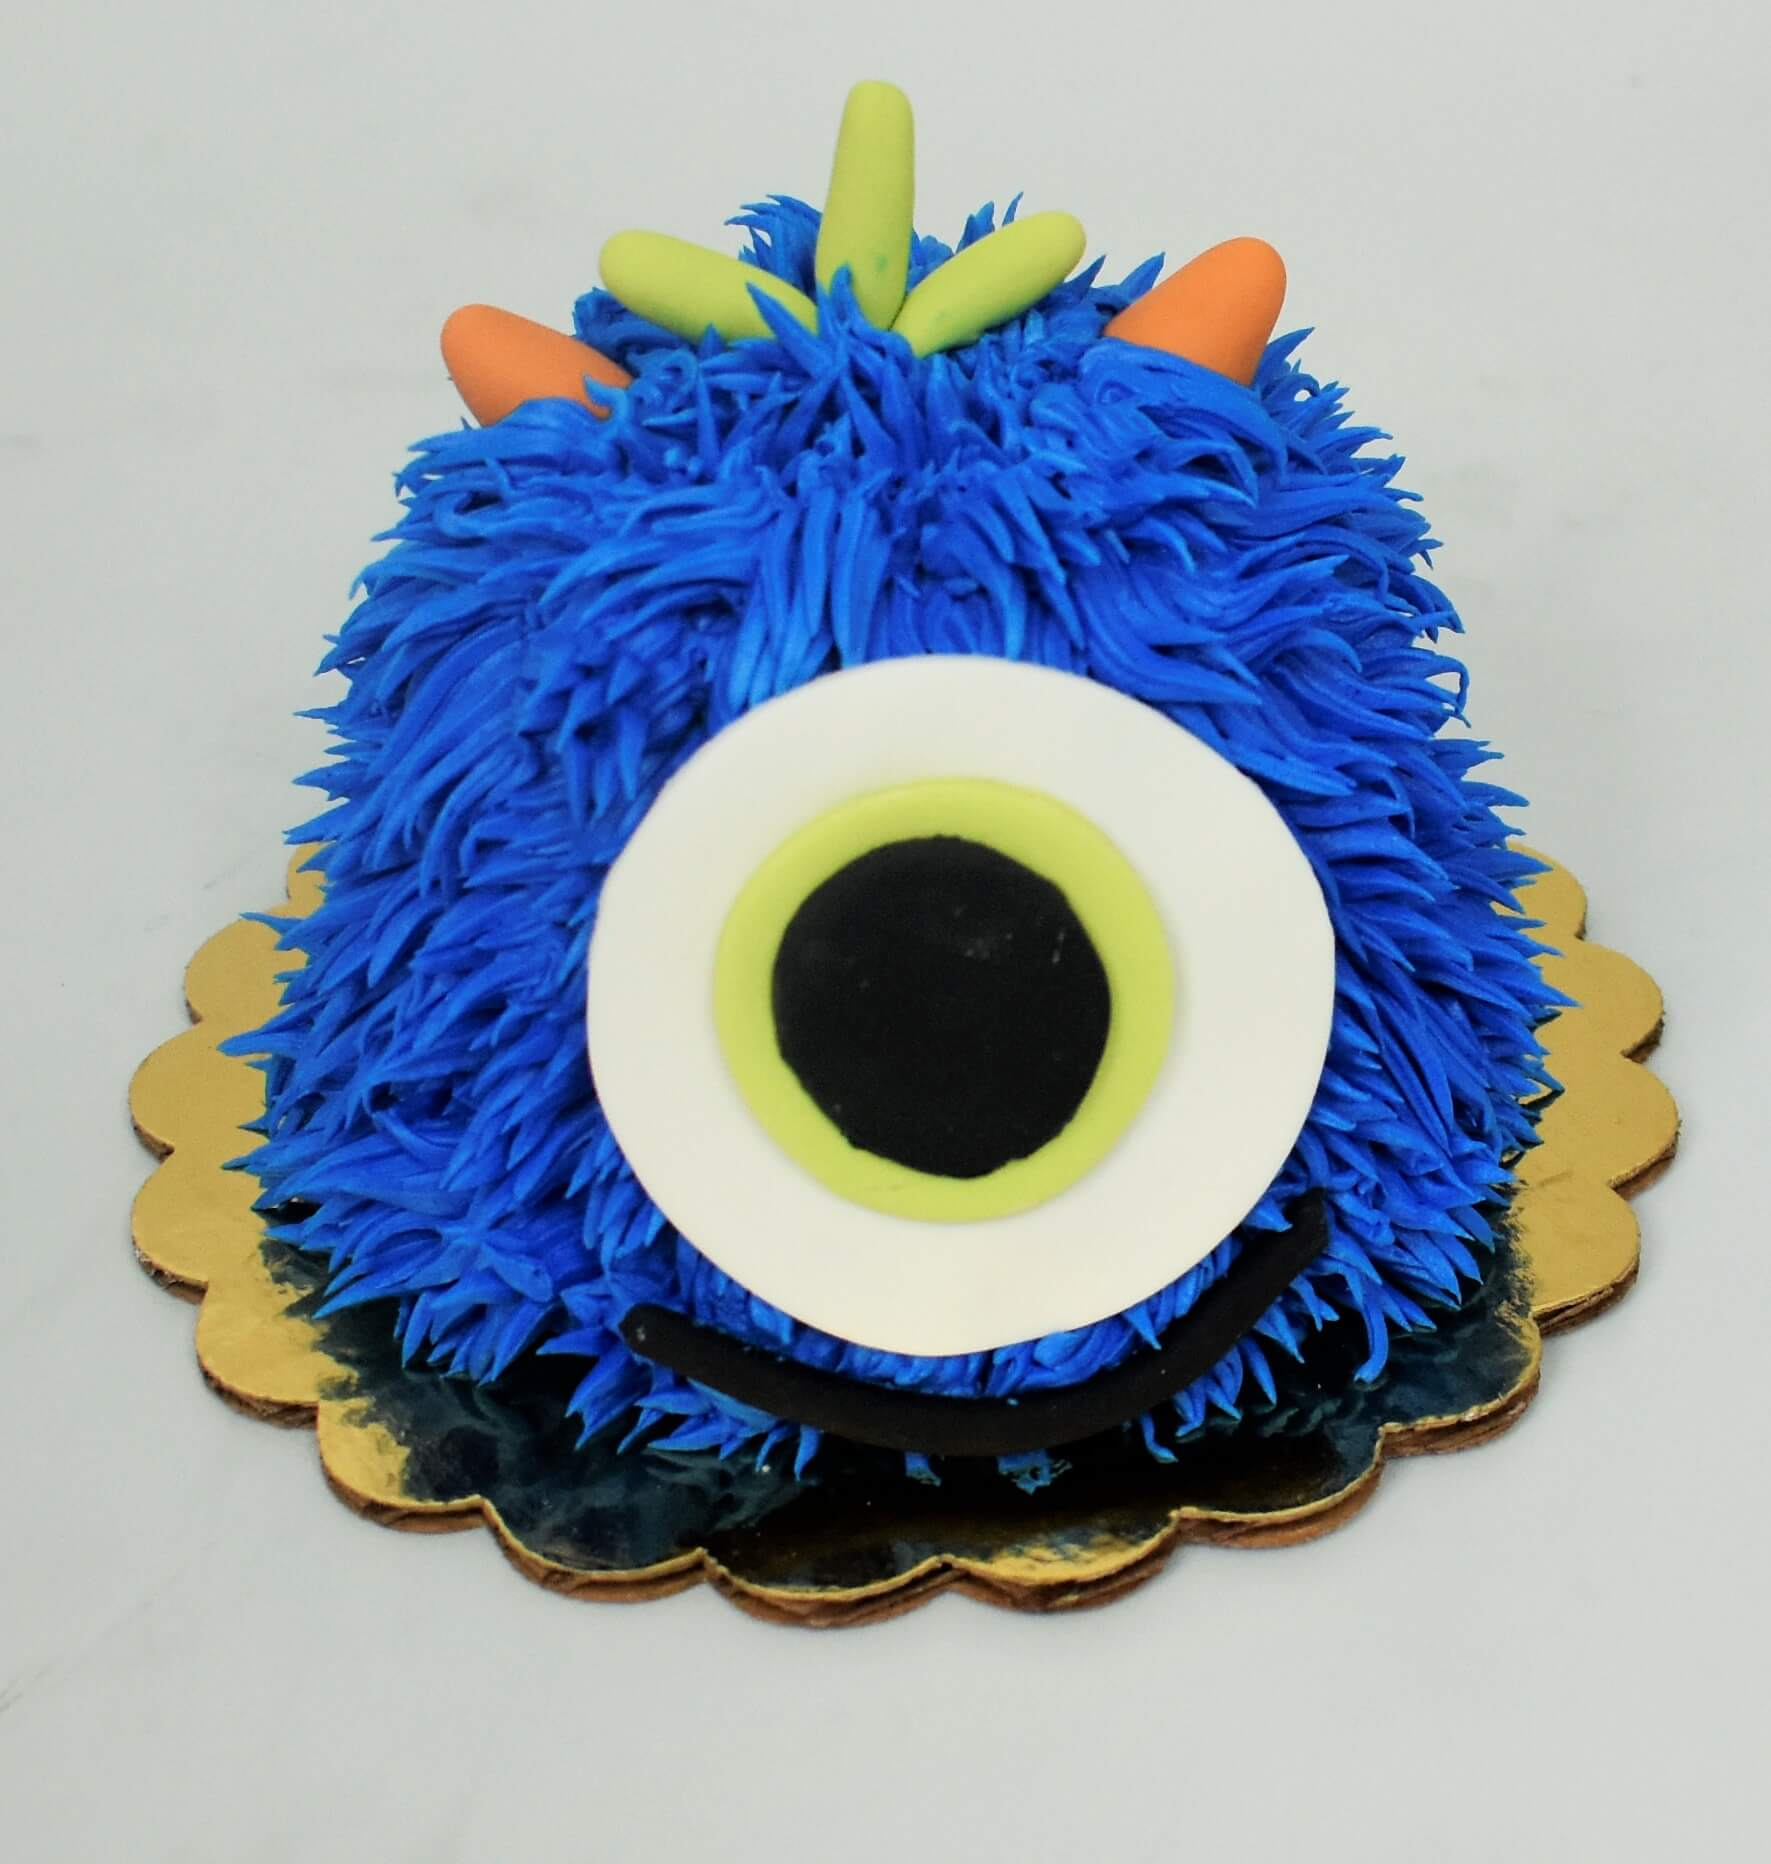 MaArthur's Bakery Custom Cake with One Eye, Blue Hair